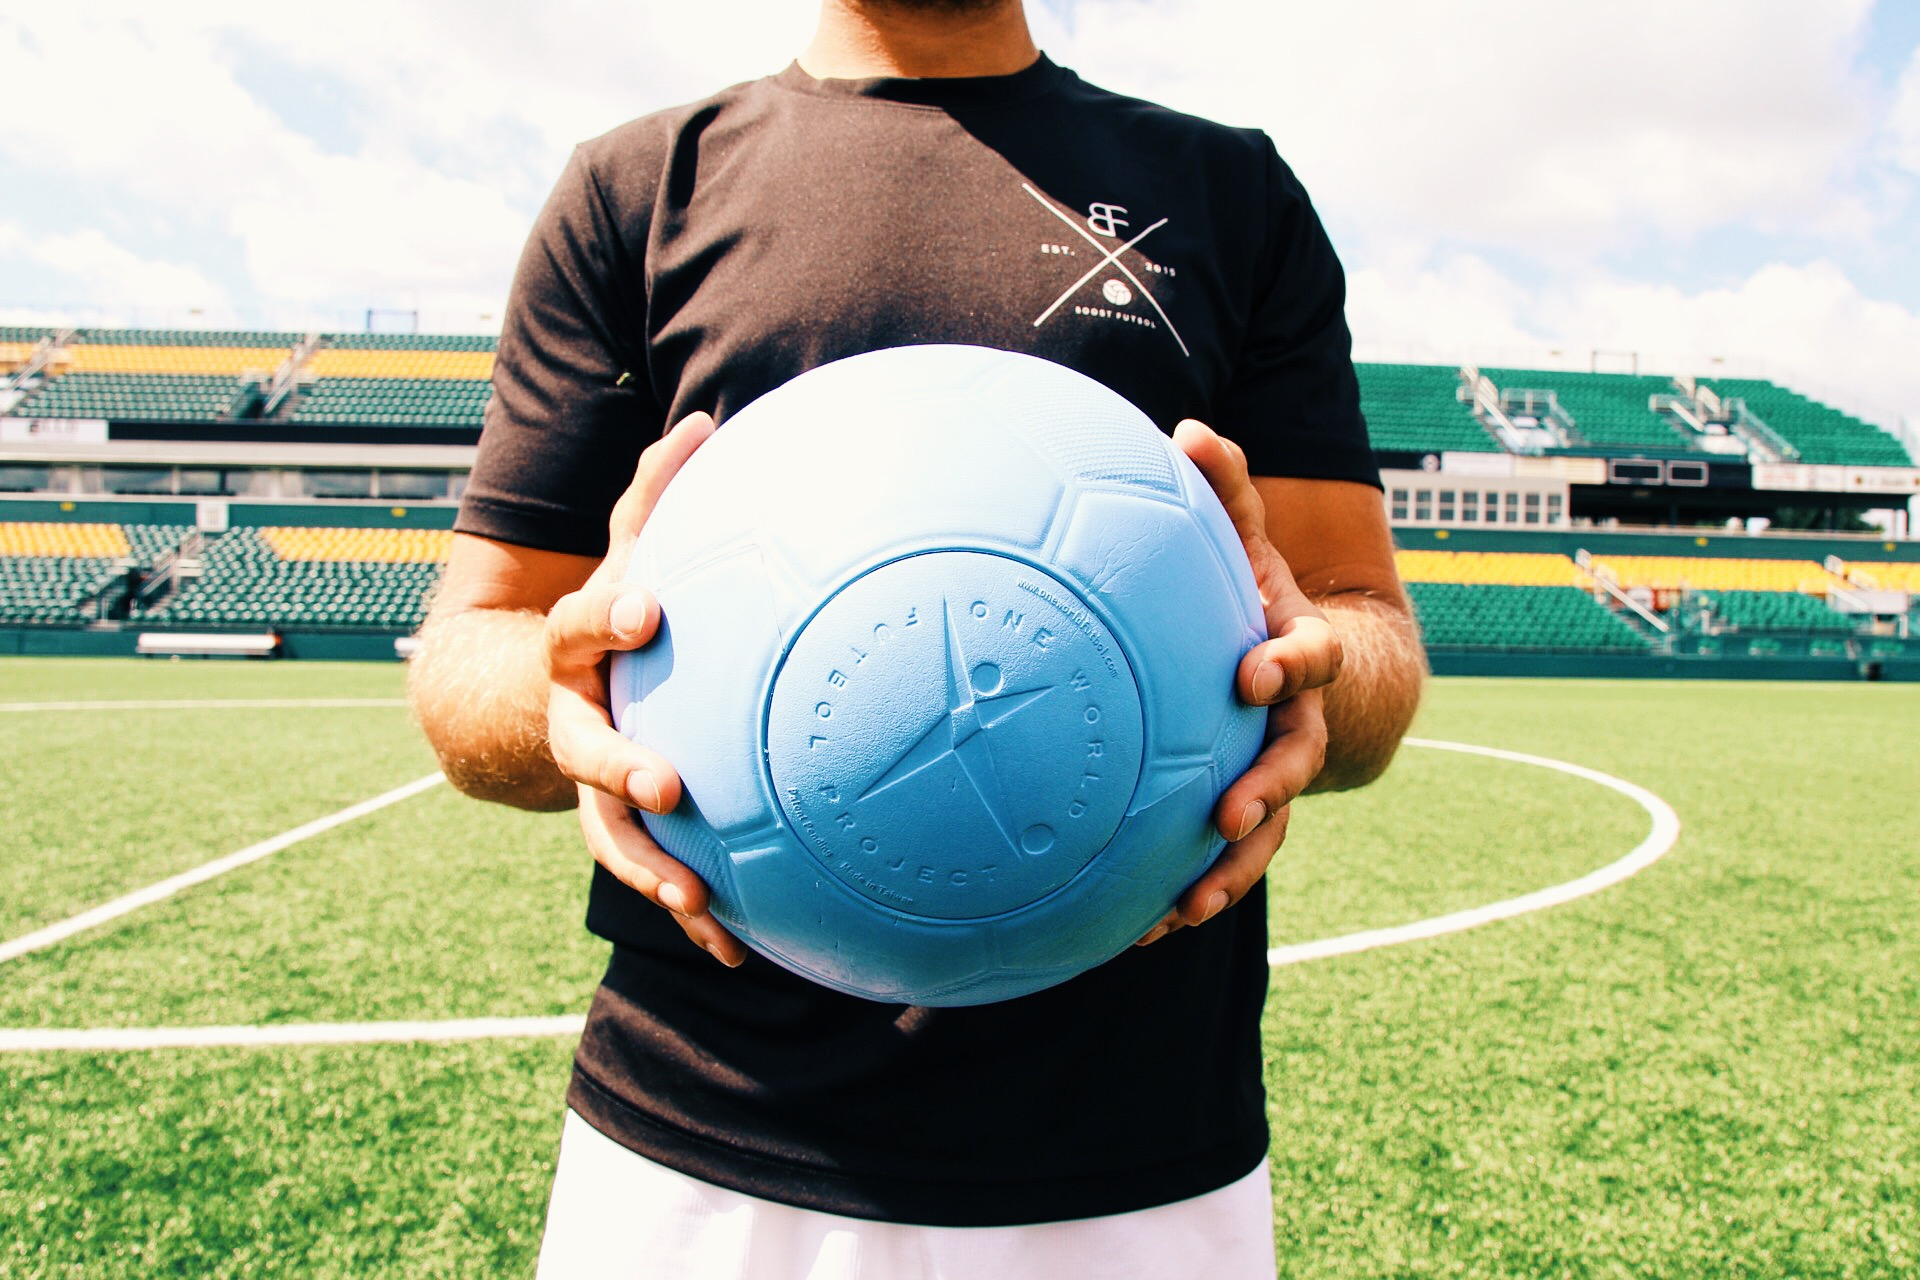 The One World Play Project Futbol